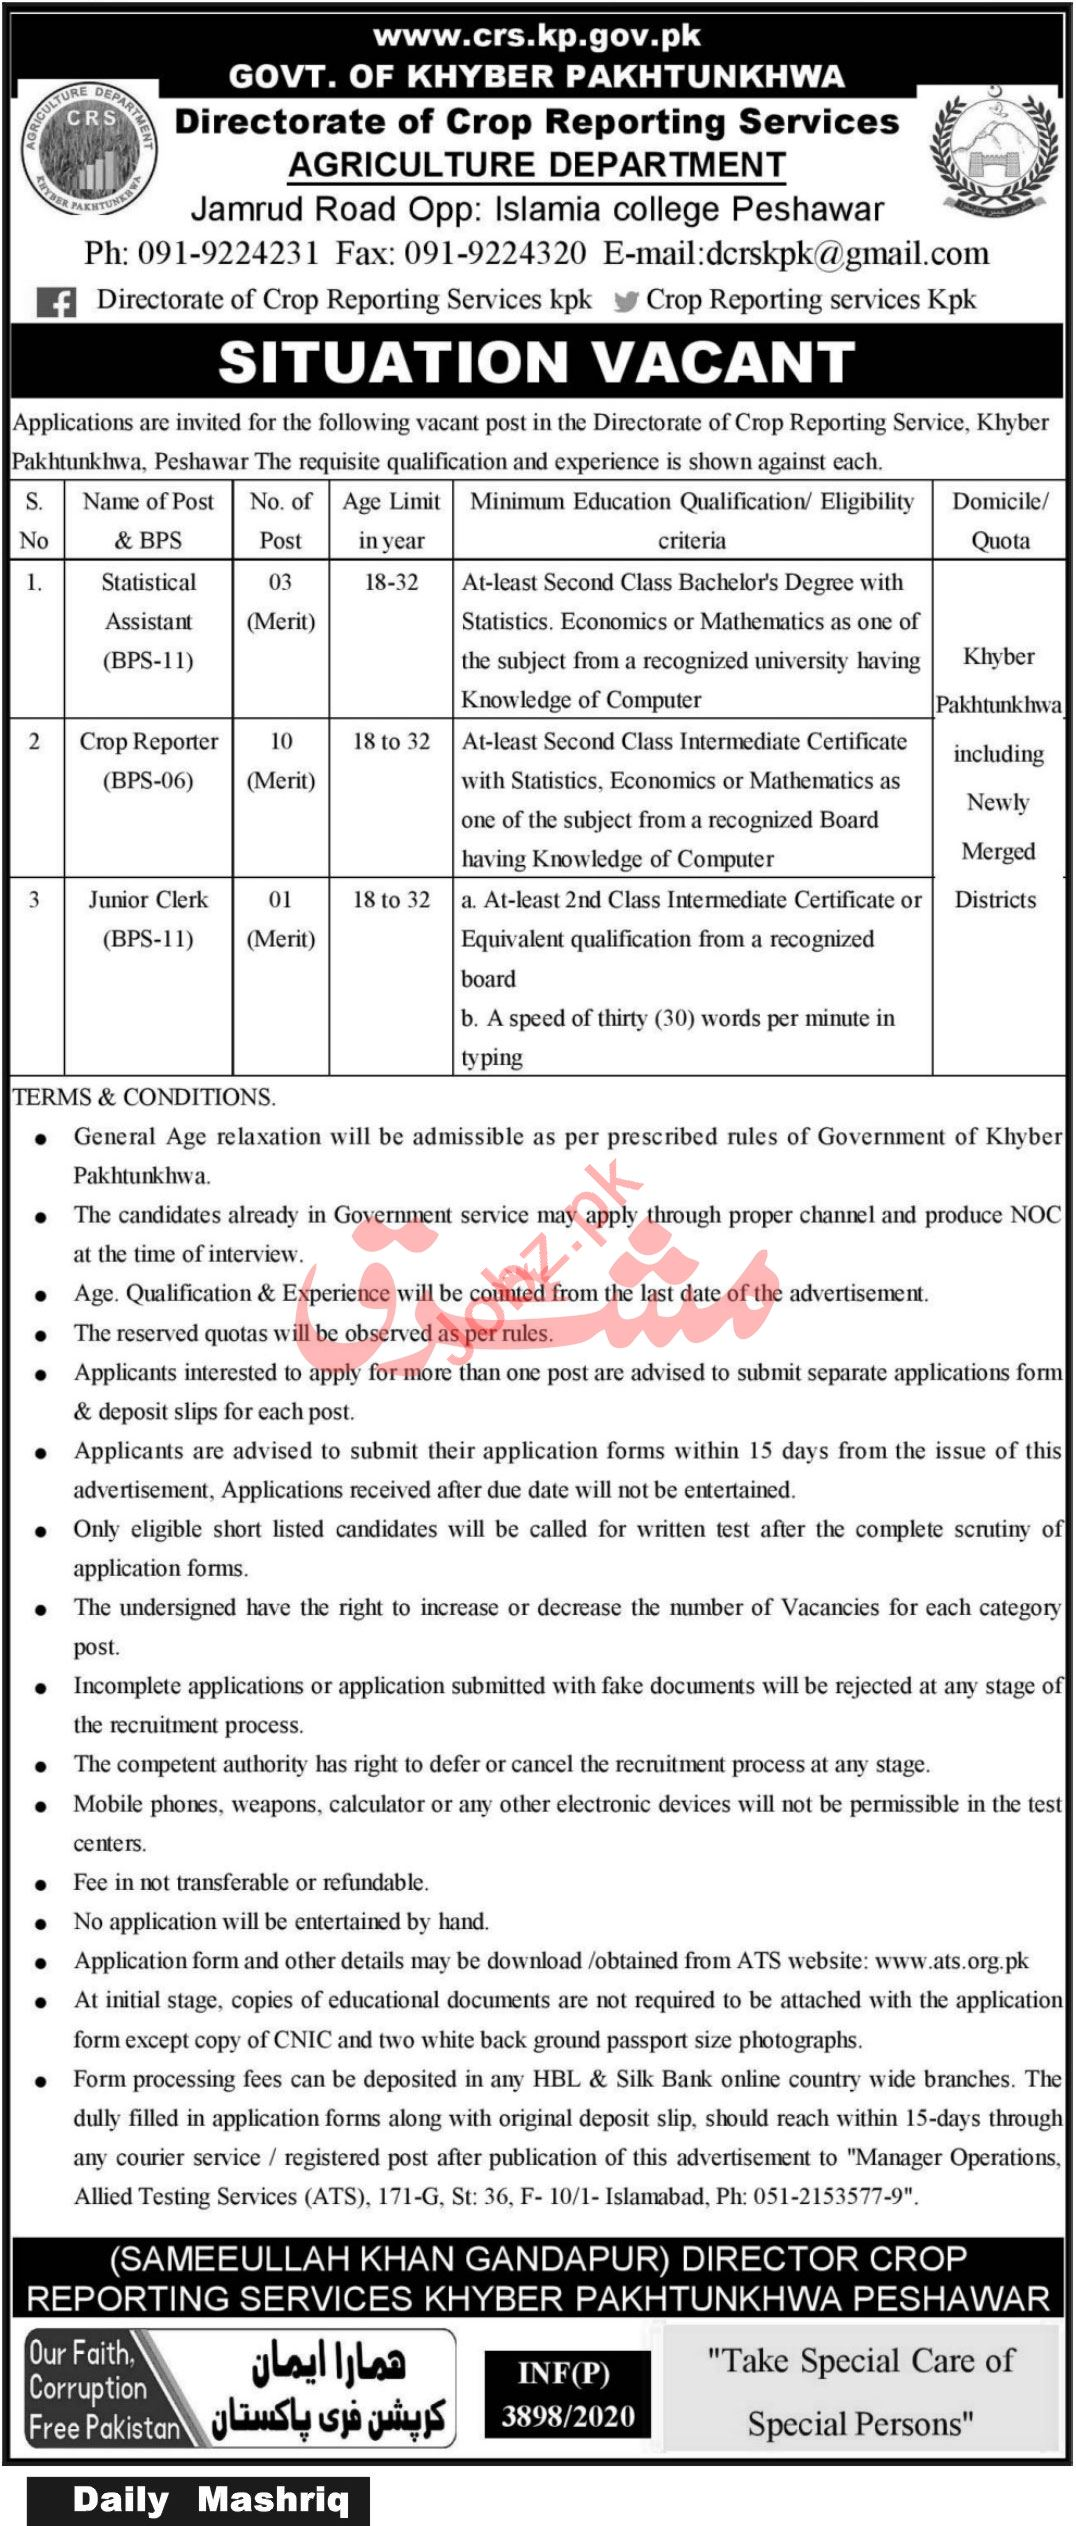 Agriculture Department Crop Reporting Services KPK Jobs 2020